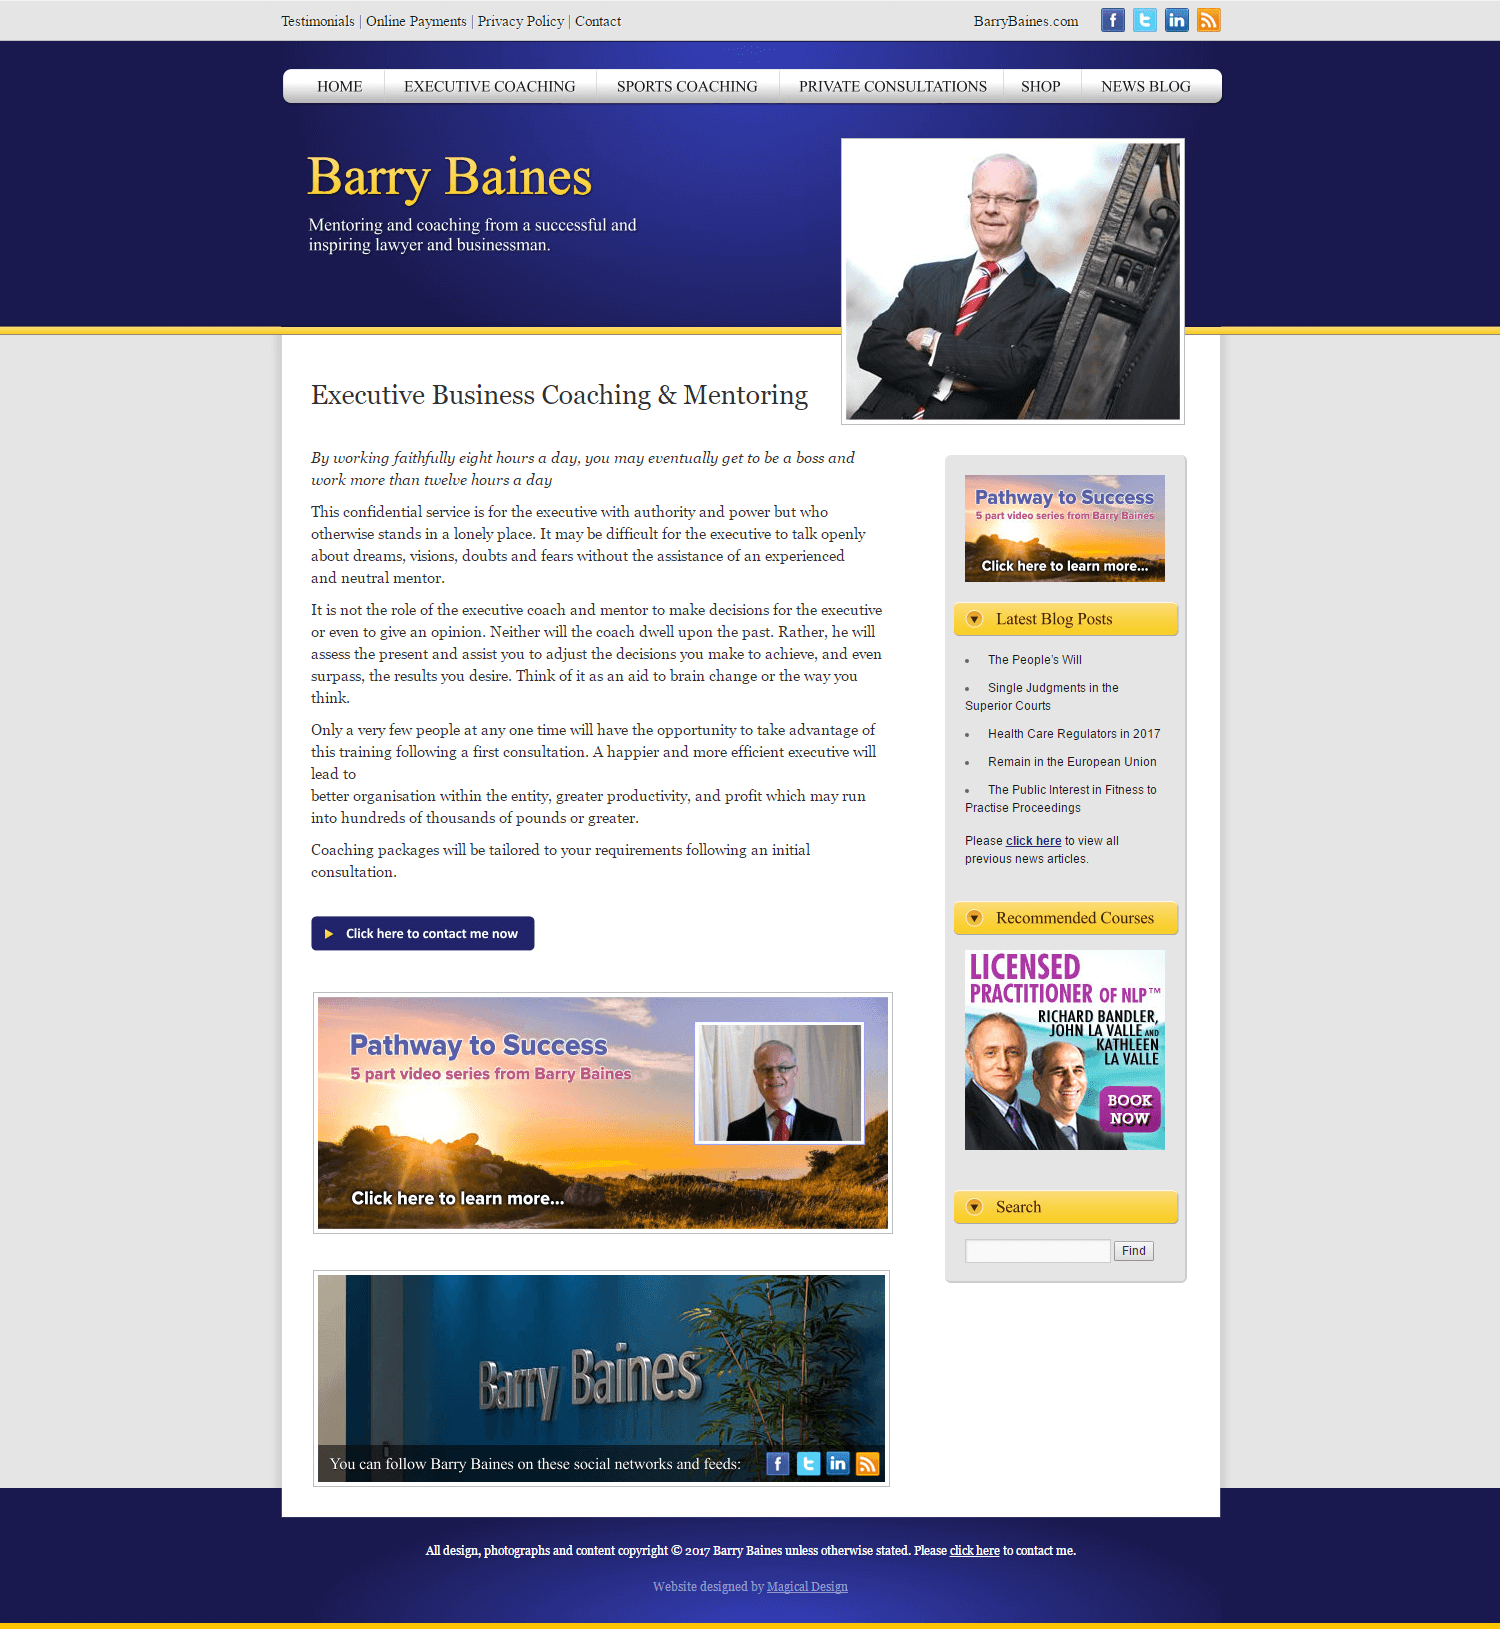 Barry Baines Executive Business Coaching